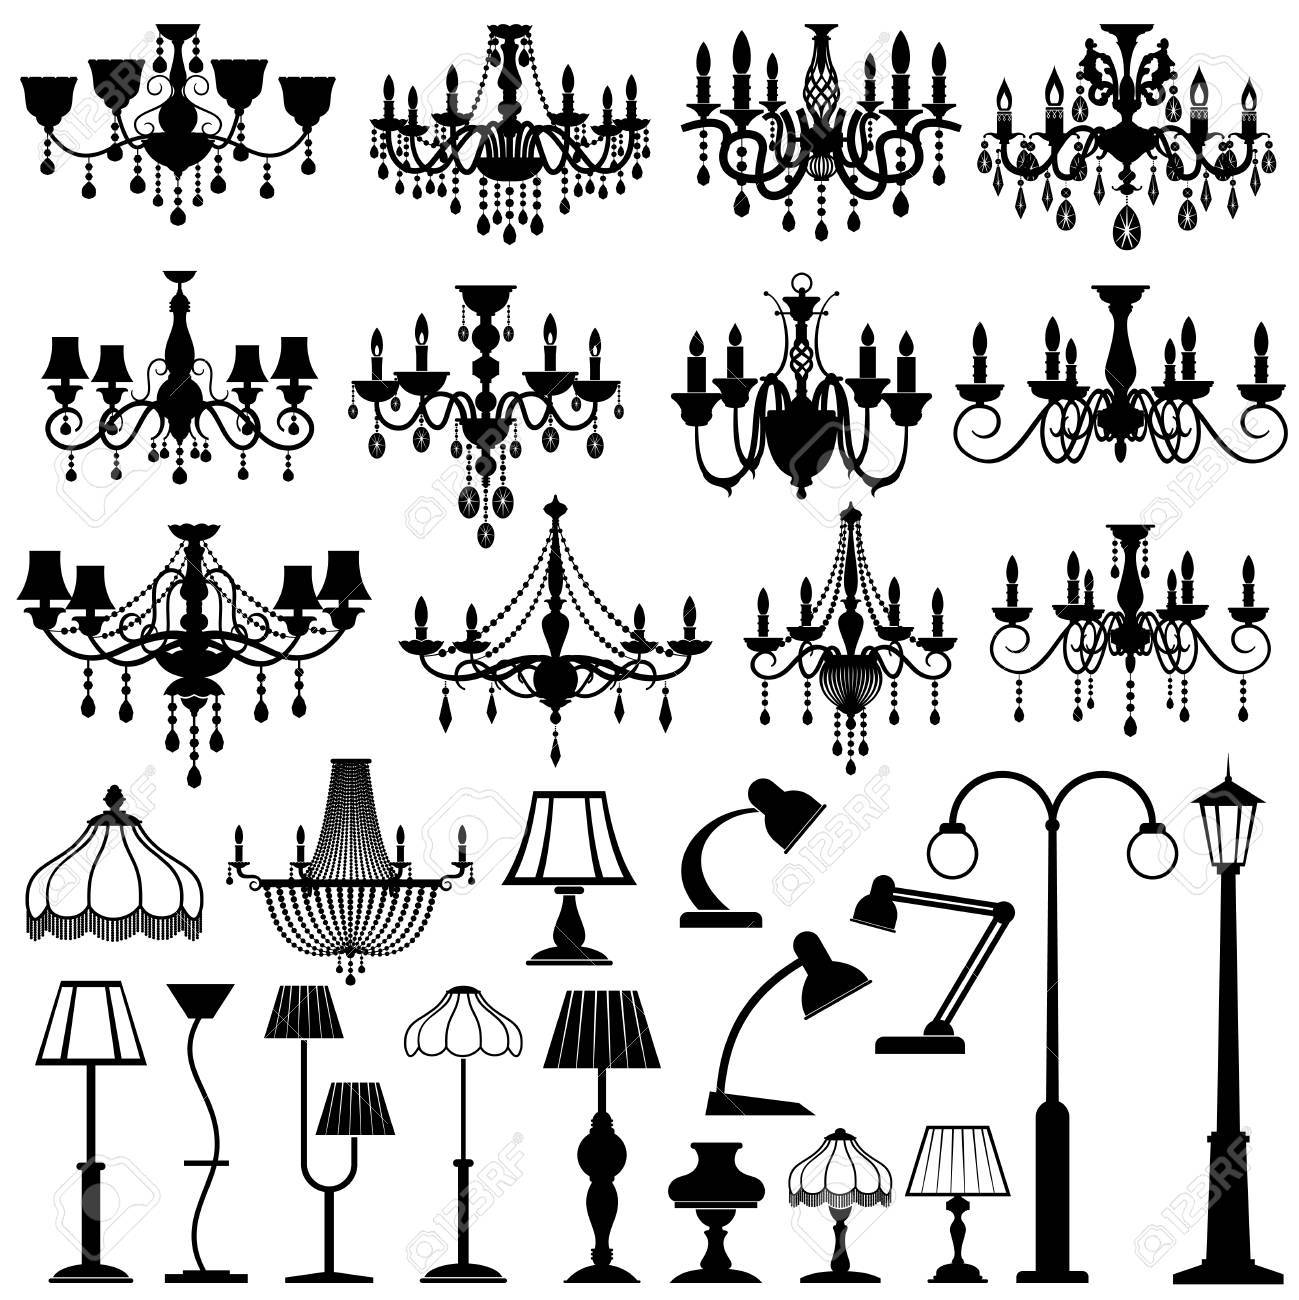 Home and outdoor lightning, lamps and chandeliers vector set. Black silhouette lamp chandelier and table lamp illustration - 78451375